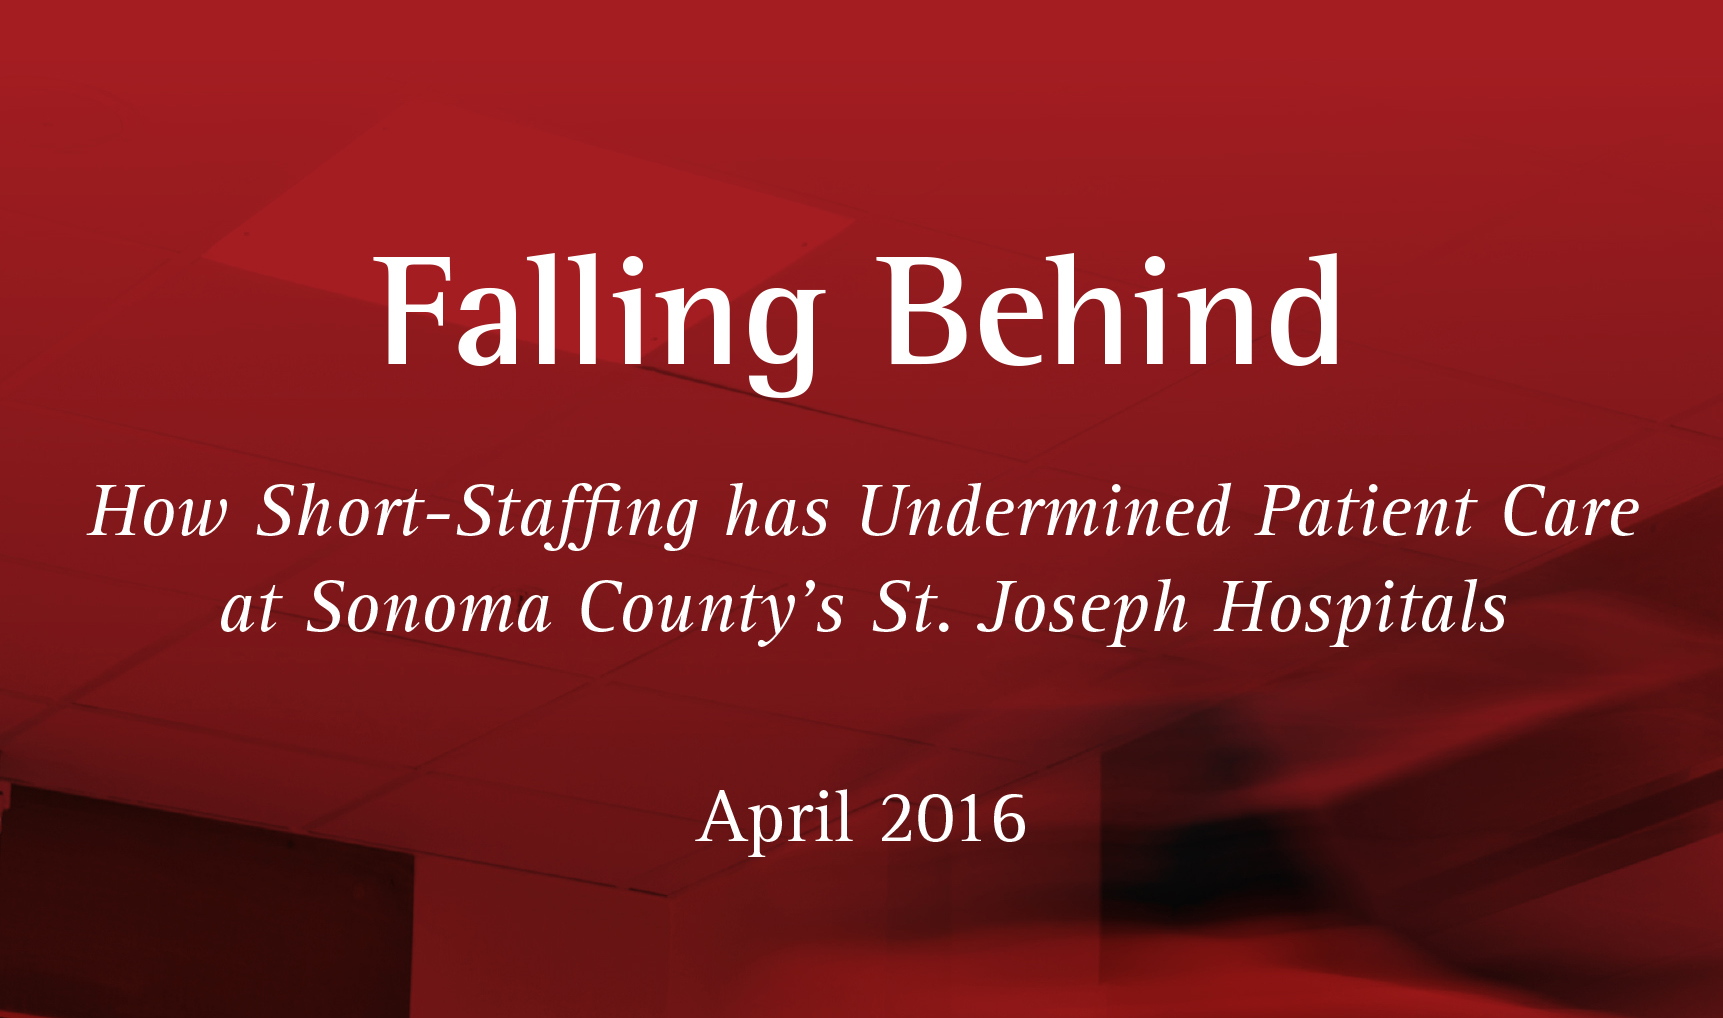 Falling Behind: An NUHW Report